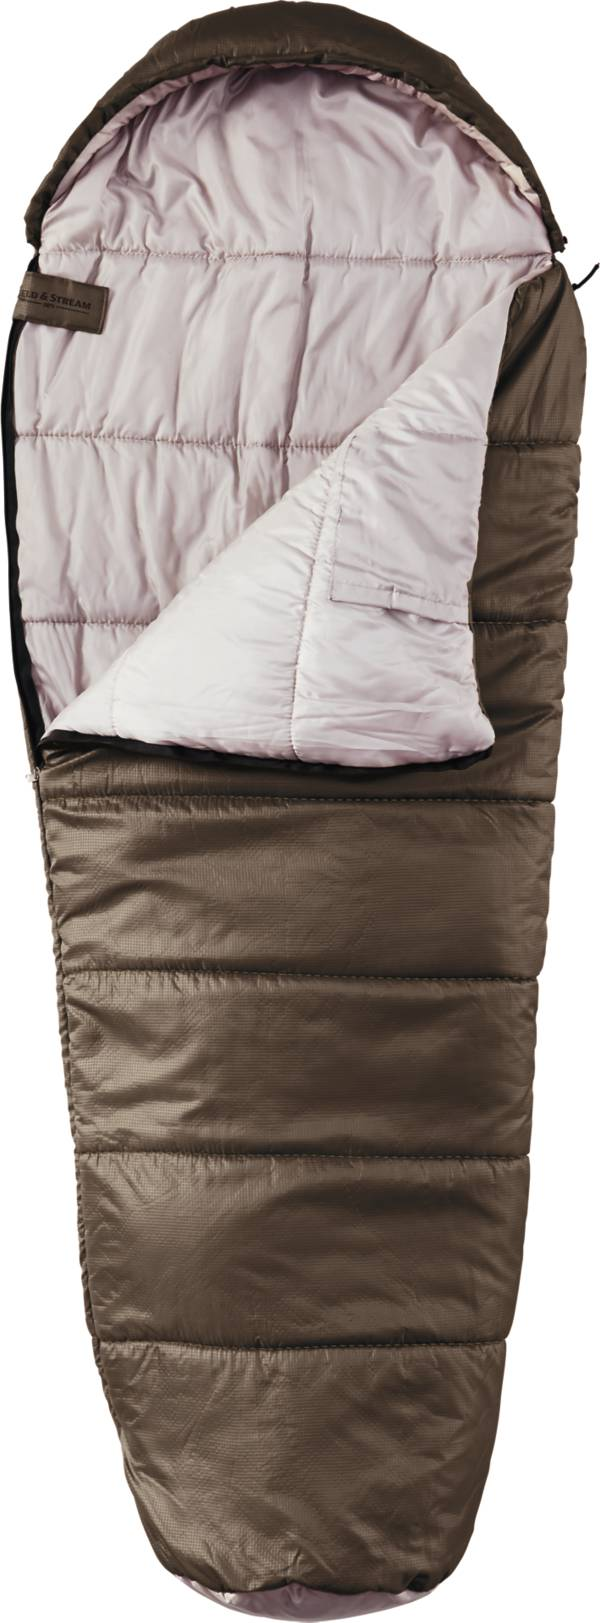 Field & Stream Youth Sportsman 30° Sleeping Bag product image